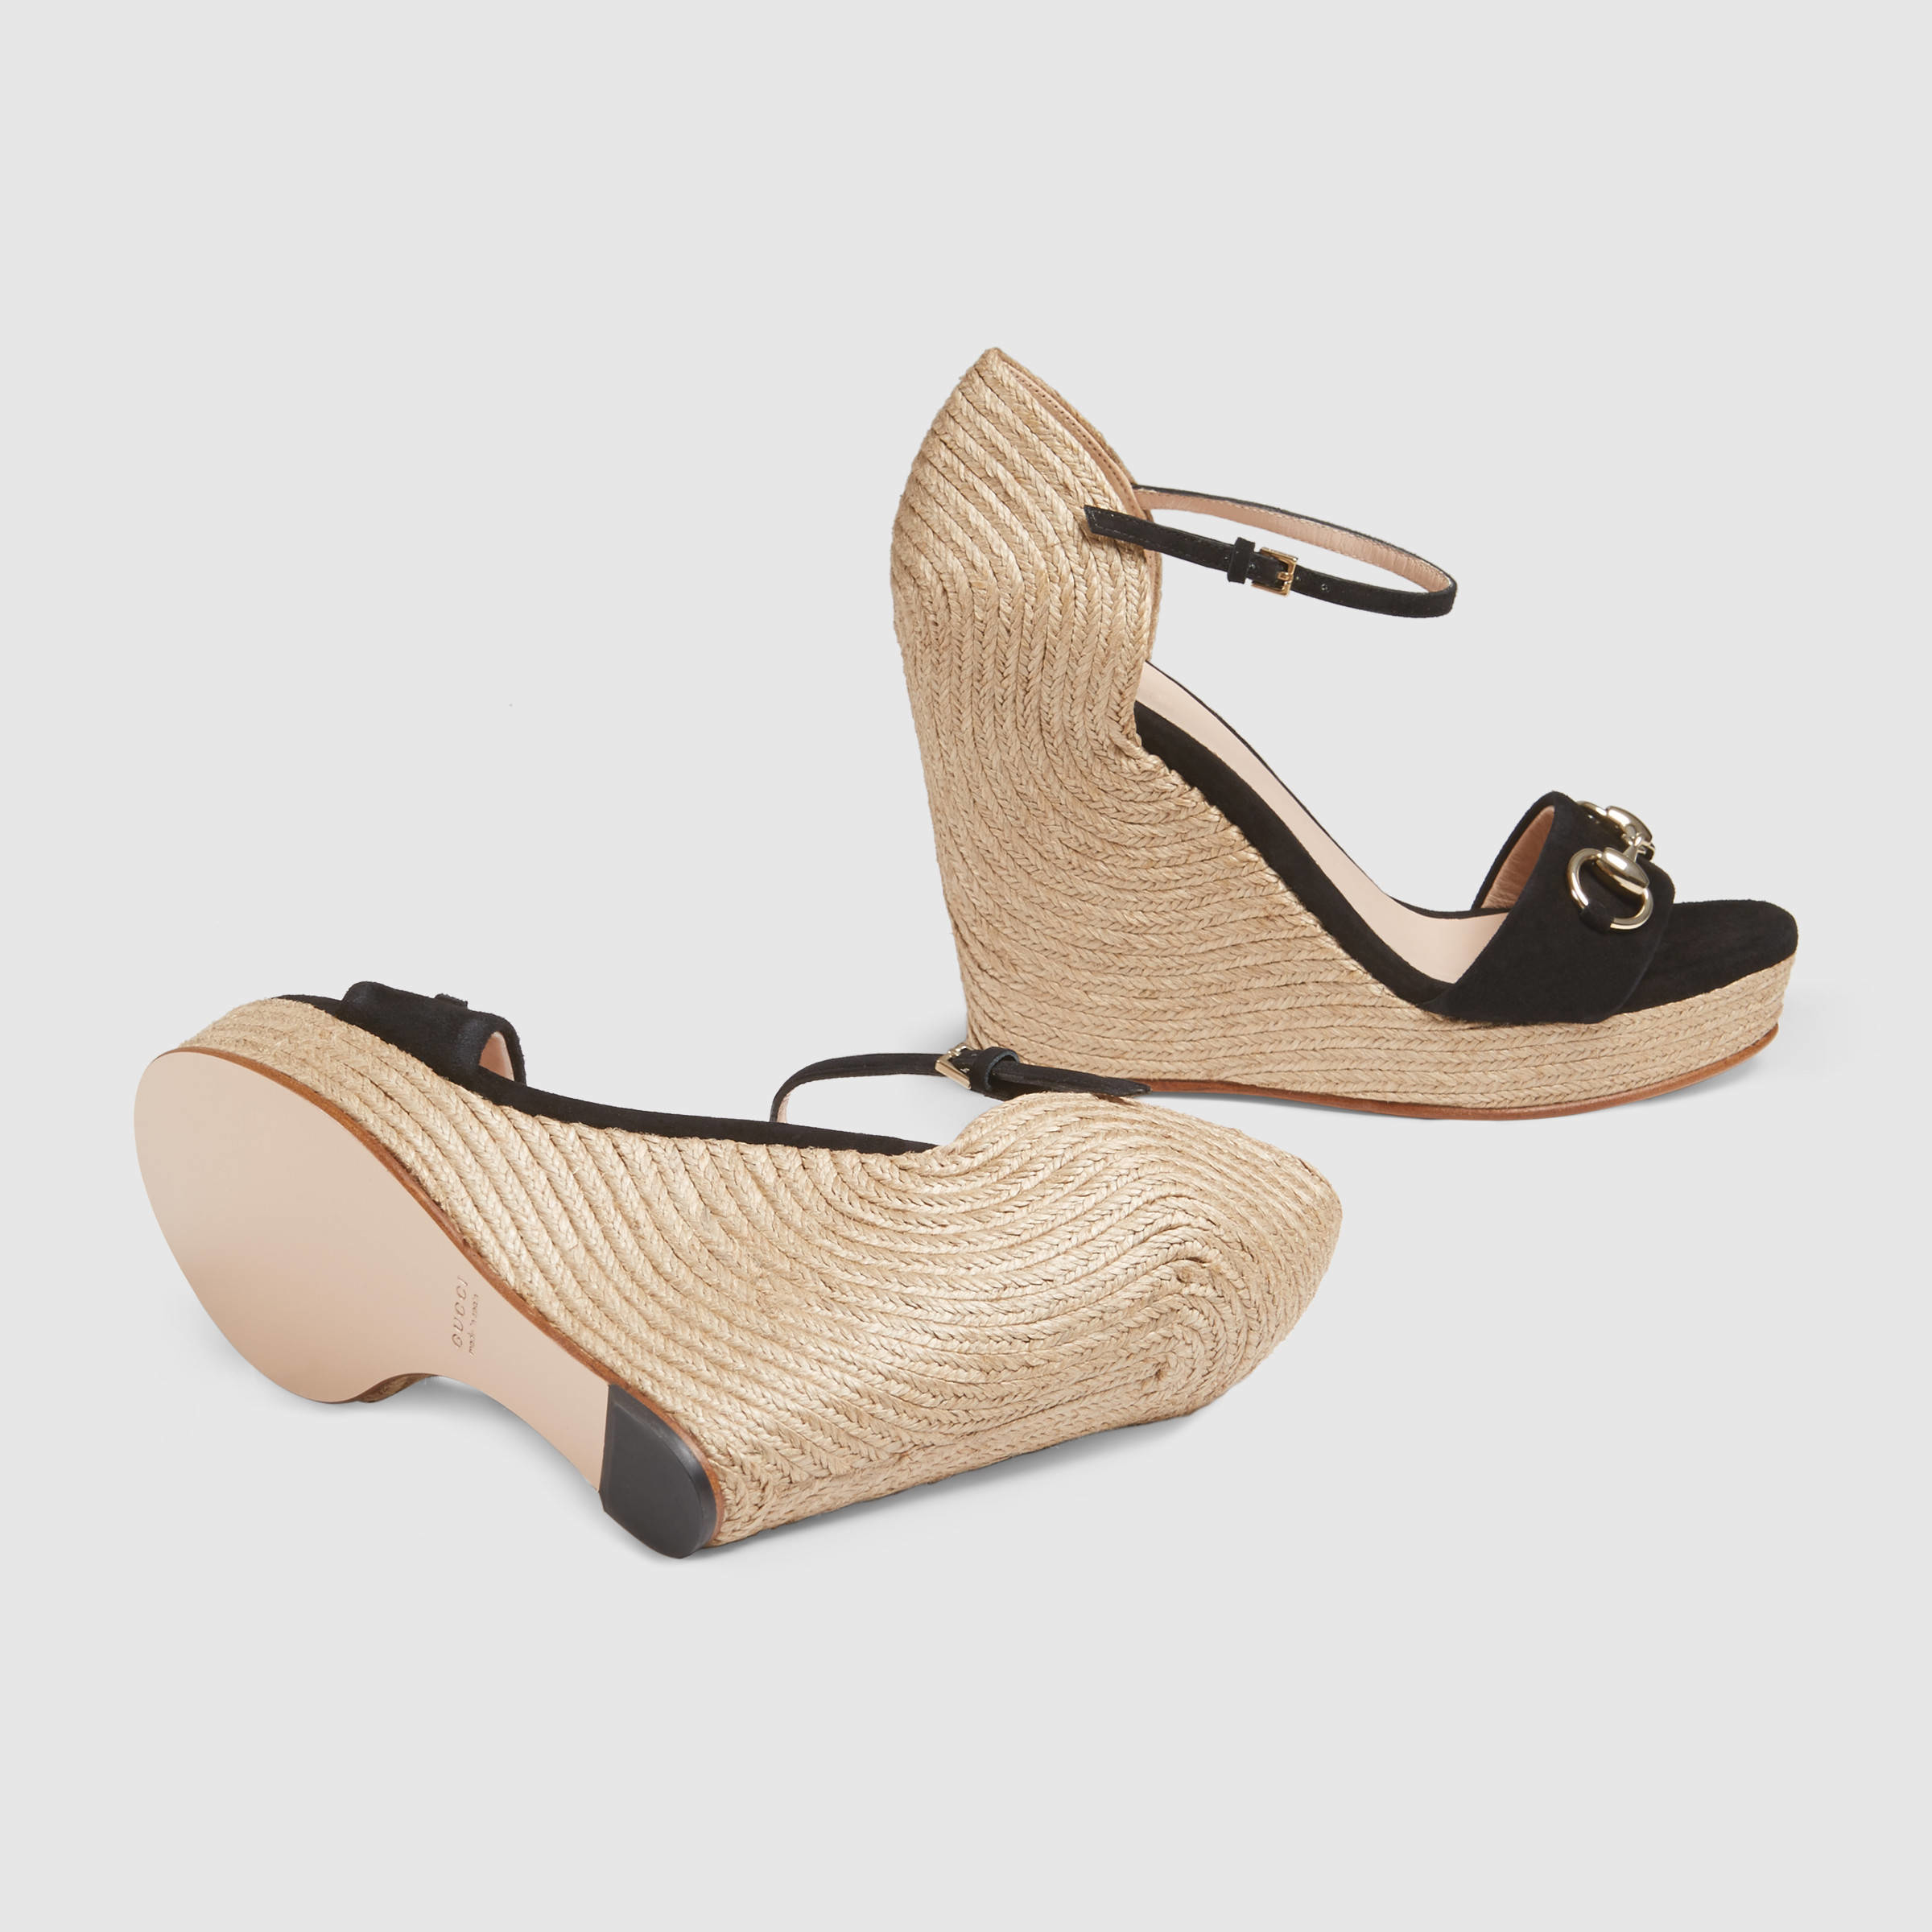 c41dd1f8bc42 Lyst - Gucci Horsebit Suede Wedge in Natural